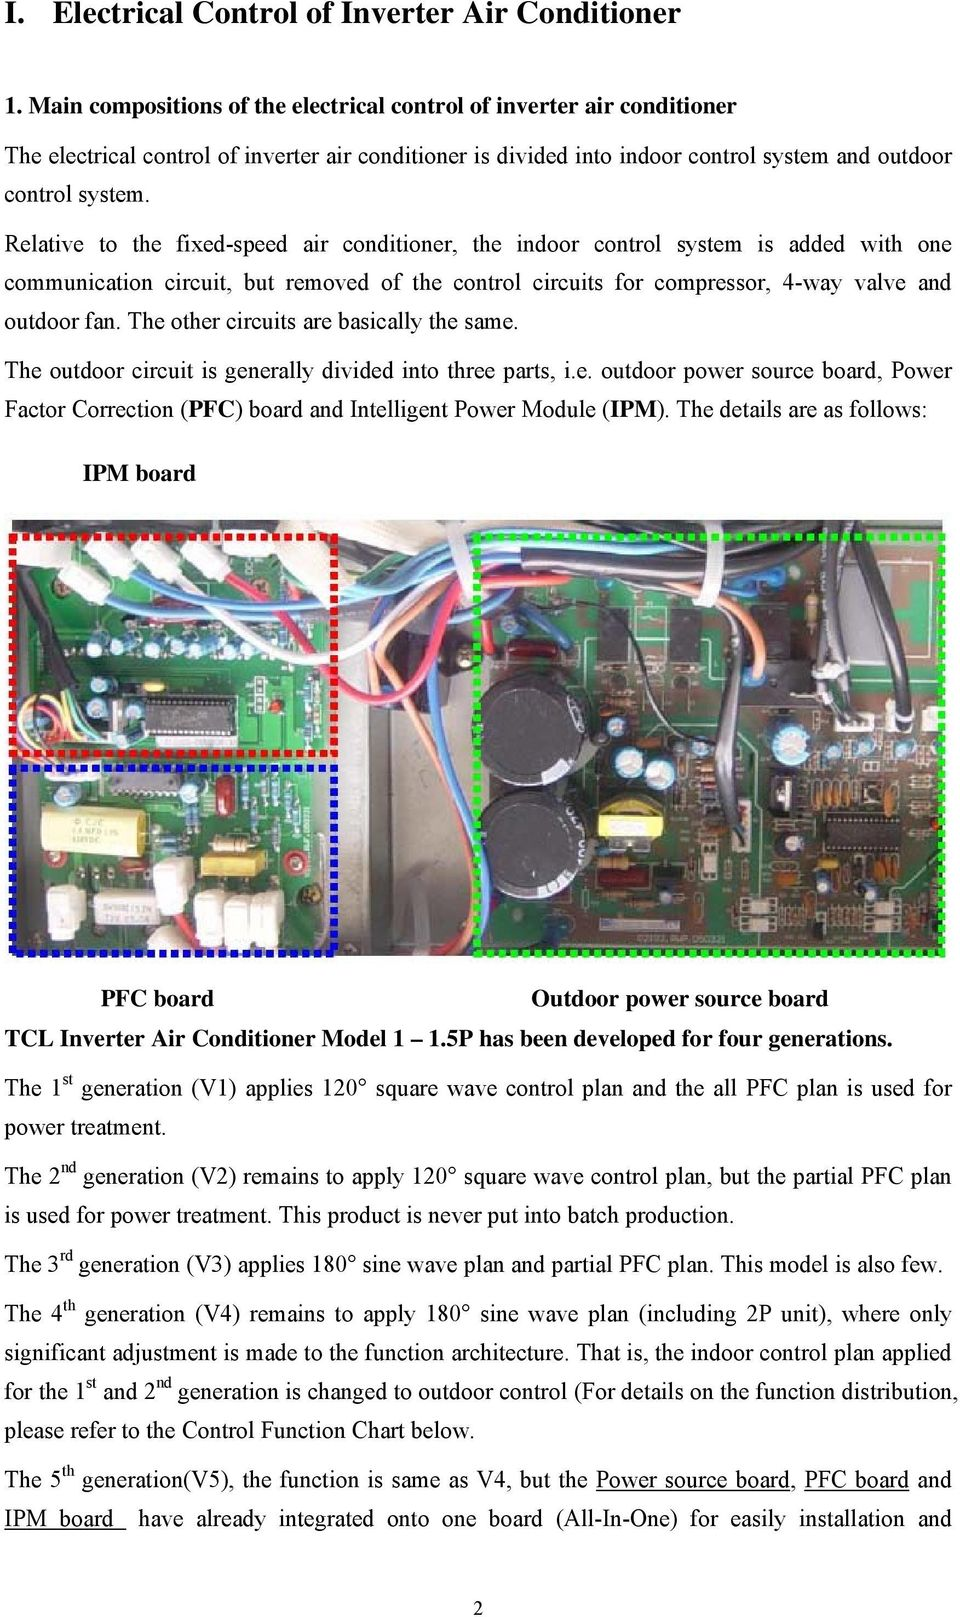 Repair Guideline For Tcl Dc Inverter Air Conditioner Pdf Electronical Circuit Board Buy Midea Relative To The Fixed Speed Indoor Control System Is Added With